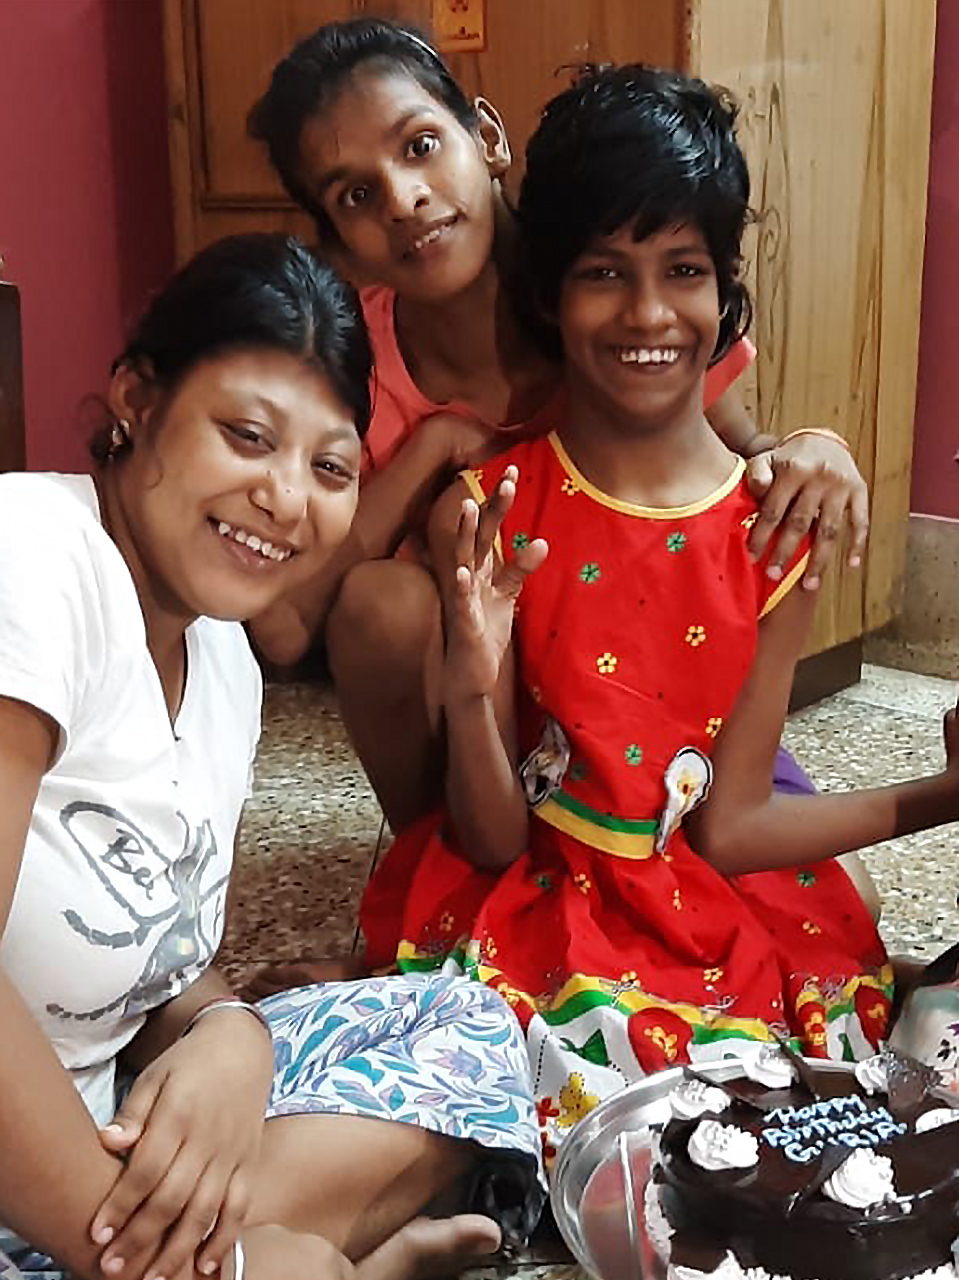 29 September - Muniya and Lali celebrate with Guria